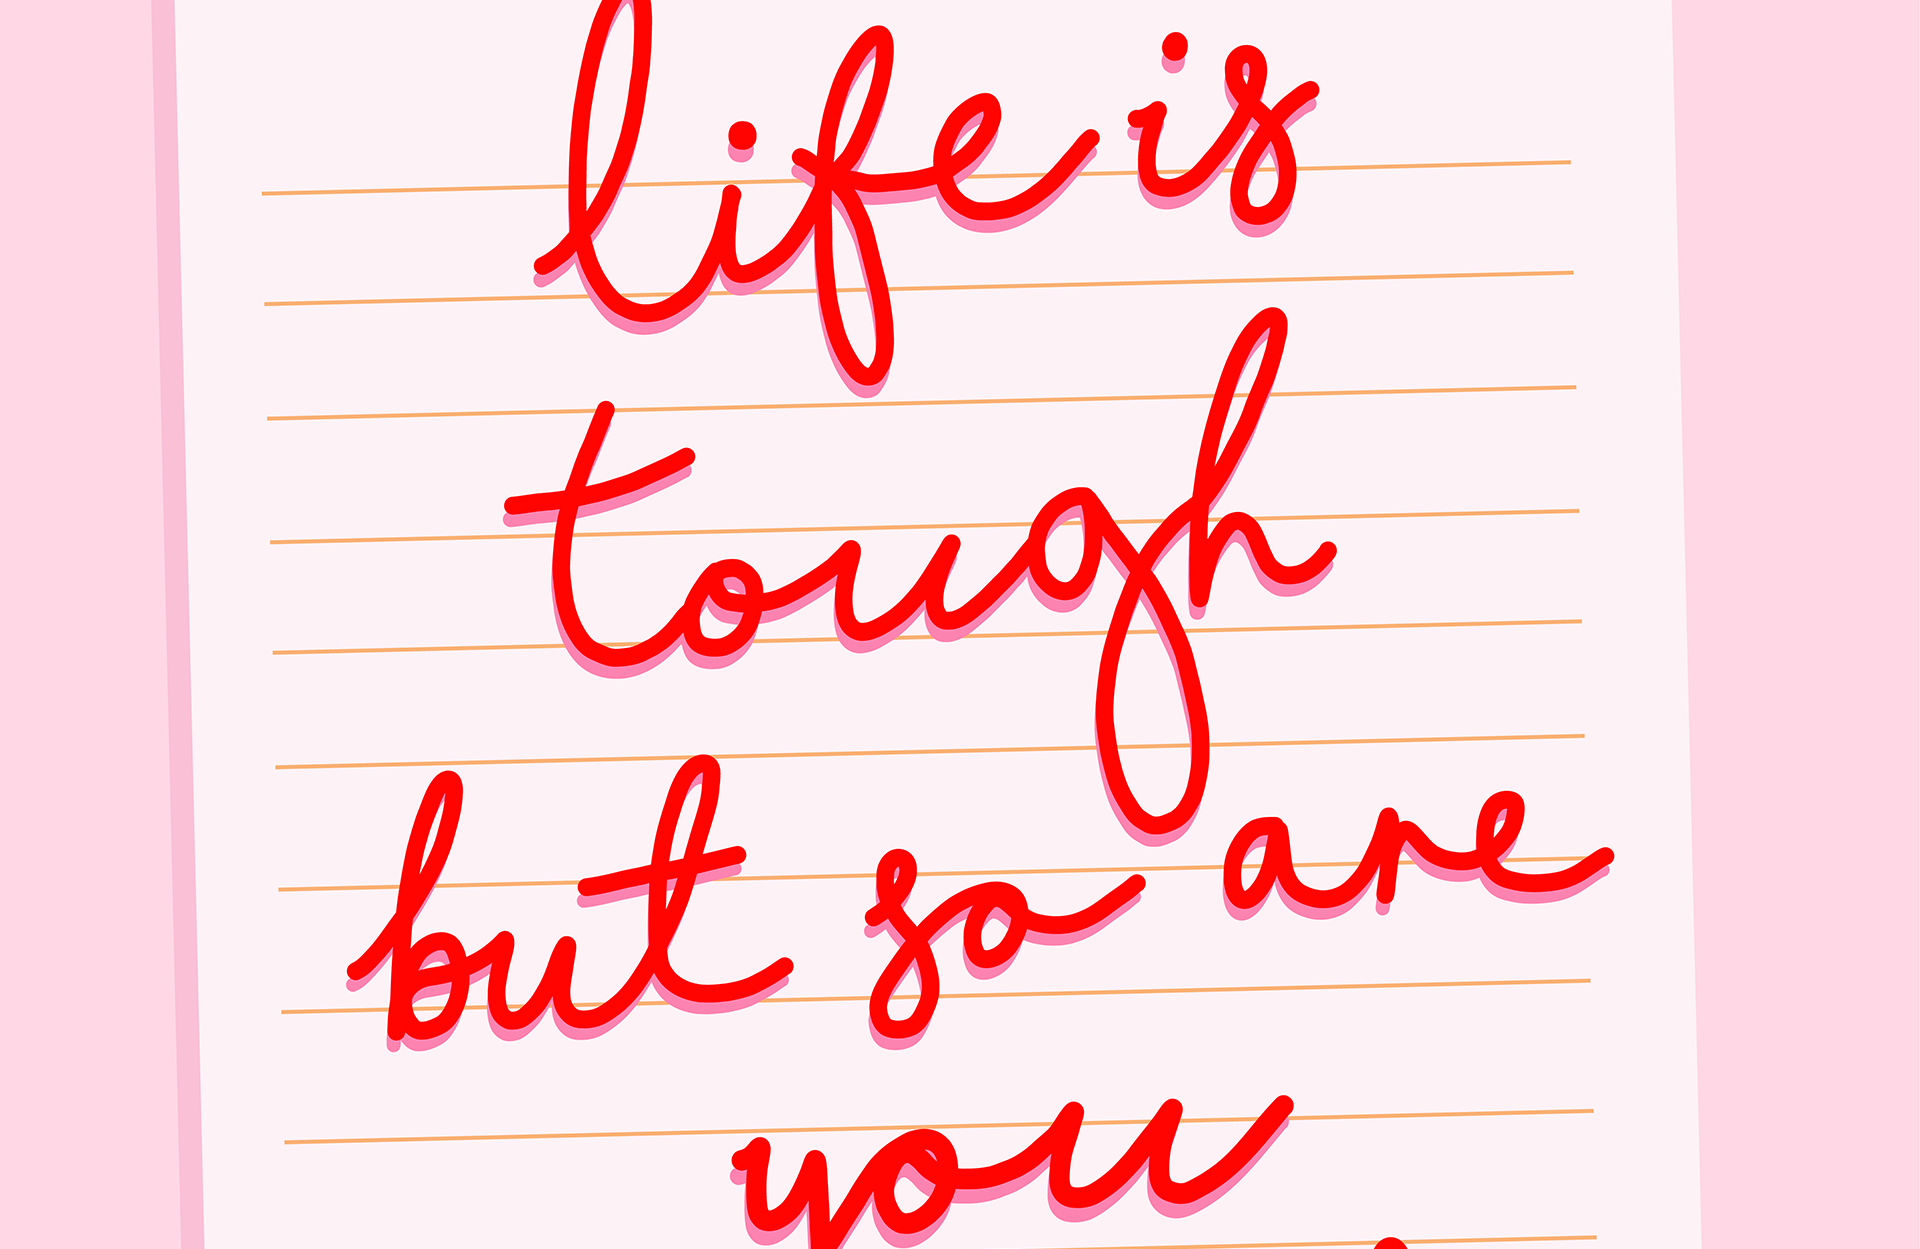 poppy_almond_Life_is_tough_but_so_are_you_Nine_By_Nine_6.jpg